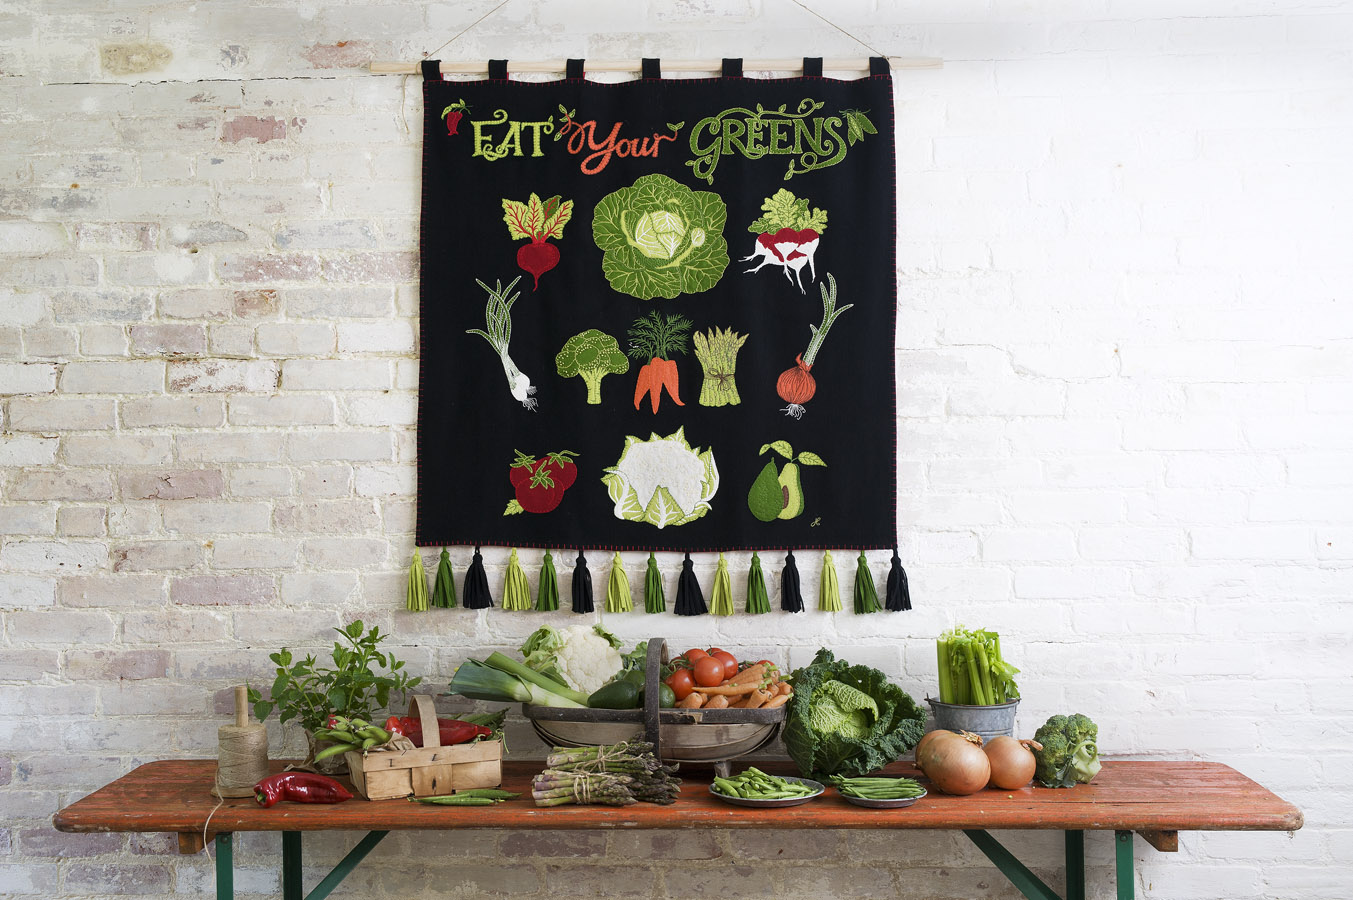 12-jan-c-eat-your-greens-wall-hanging-20.jpg